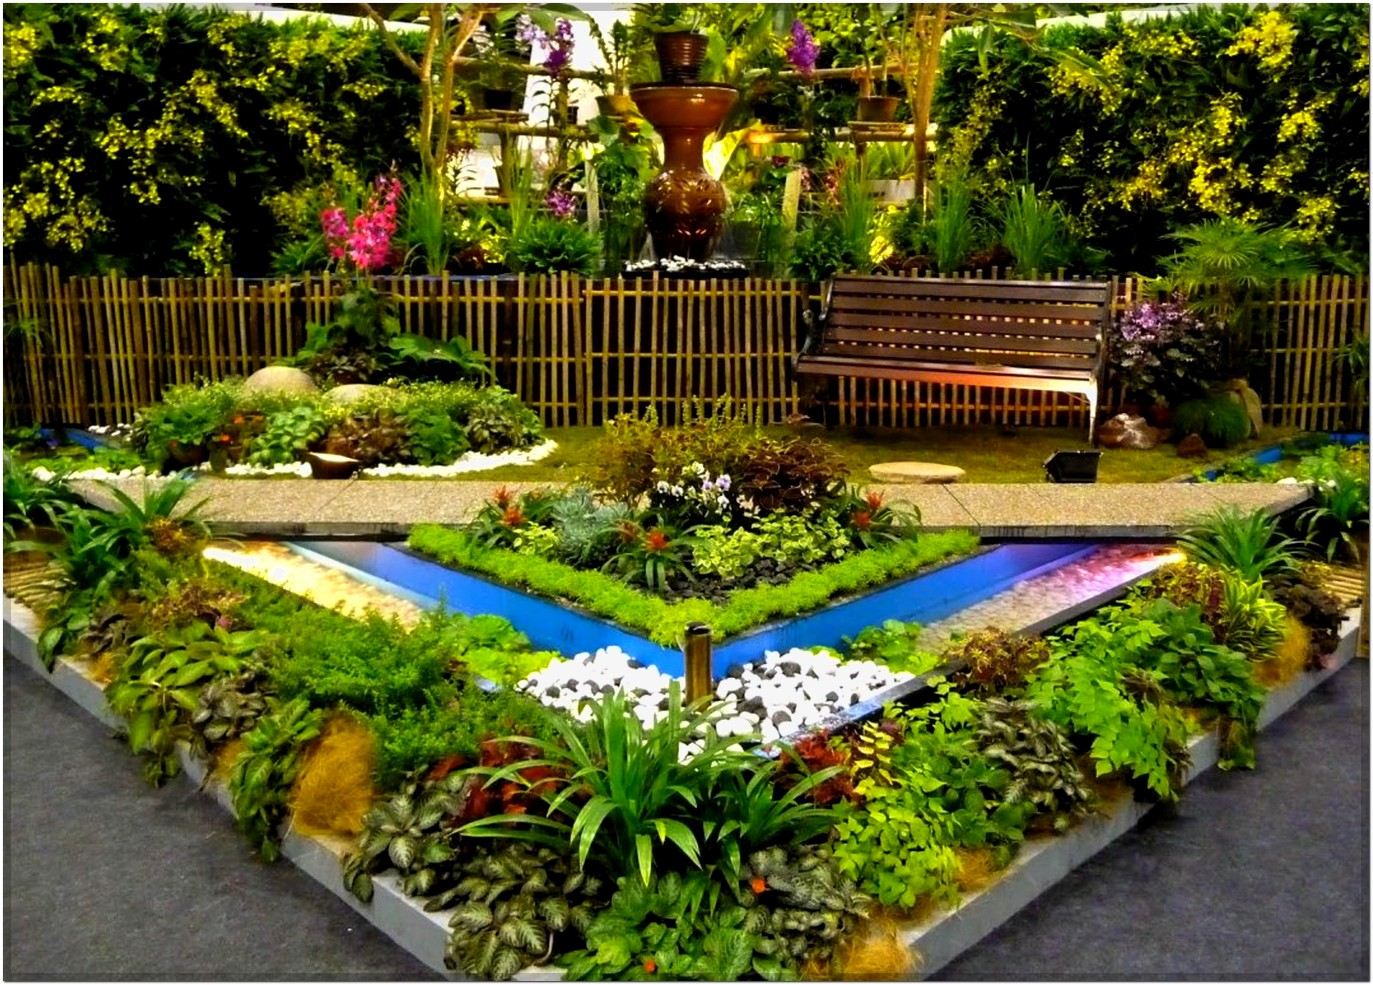 Some helpful small garden ideas for the diy project for for Small area garden design ideas